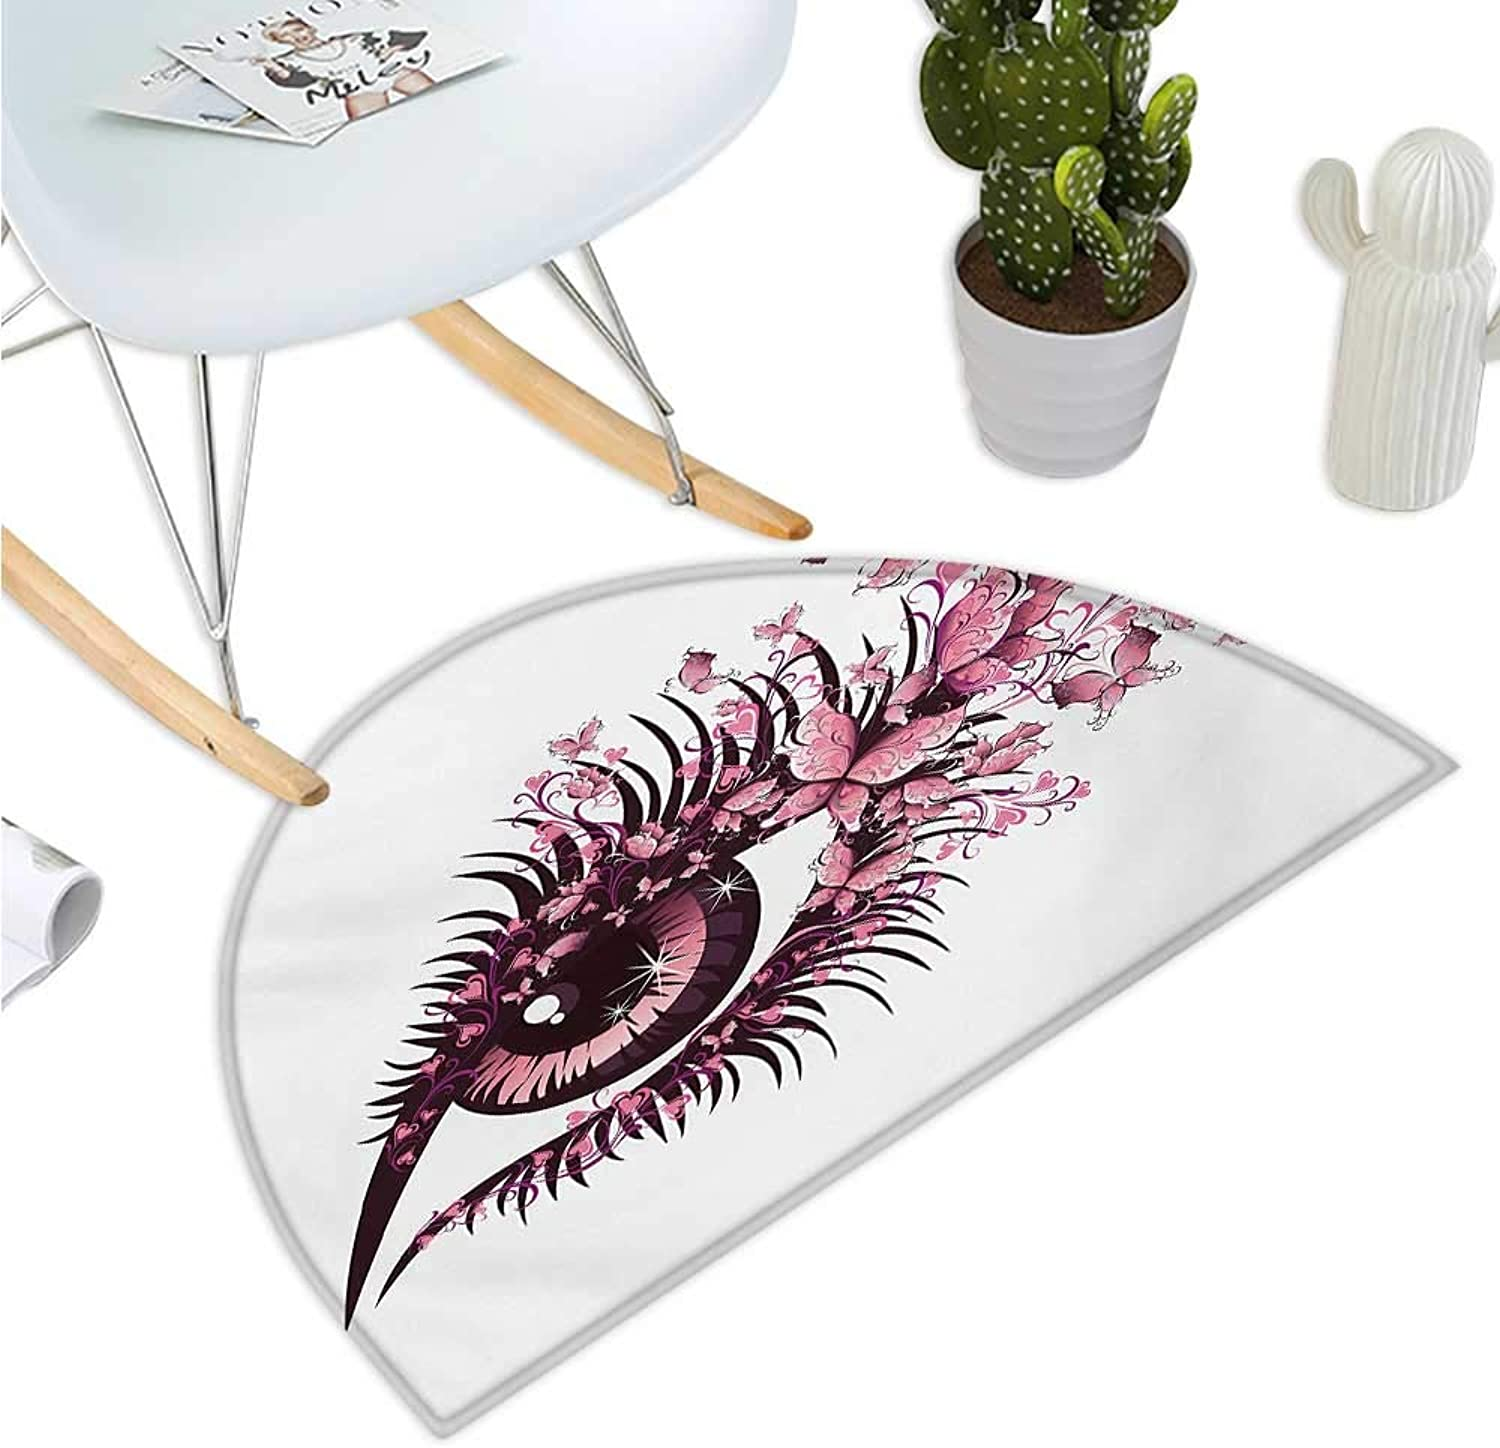 Butterflies Semicircle Doormat Fairy Female Eye with Butterflies Eyelashes Mascara Stare Party Makeup Entry Door Mat H 43.3  xD 64.9  Pale Pink Purple